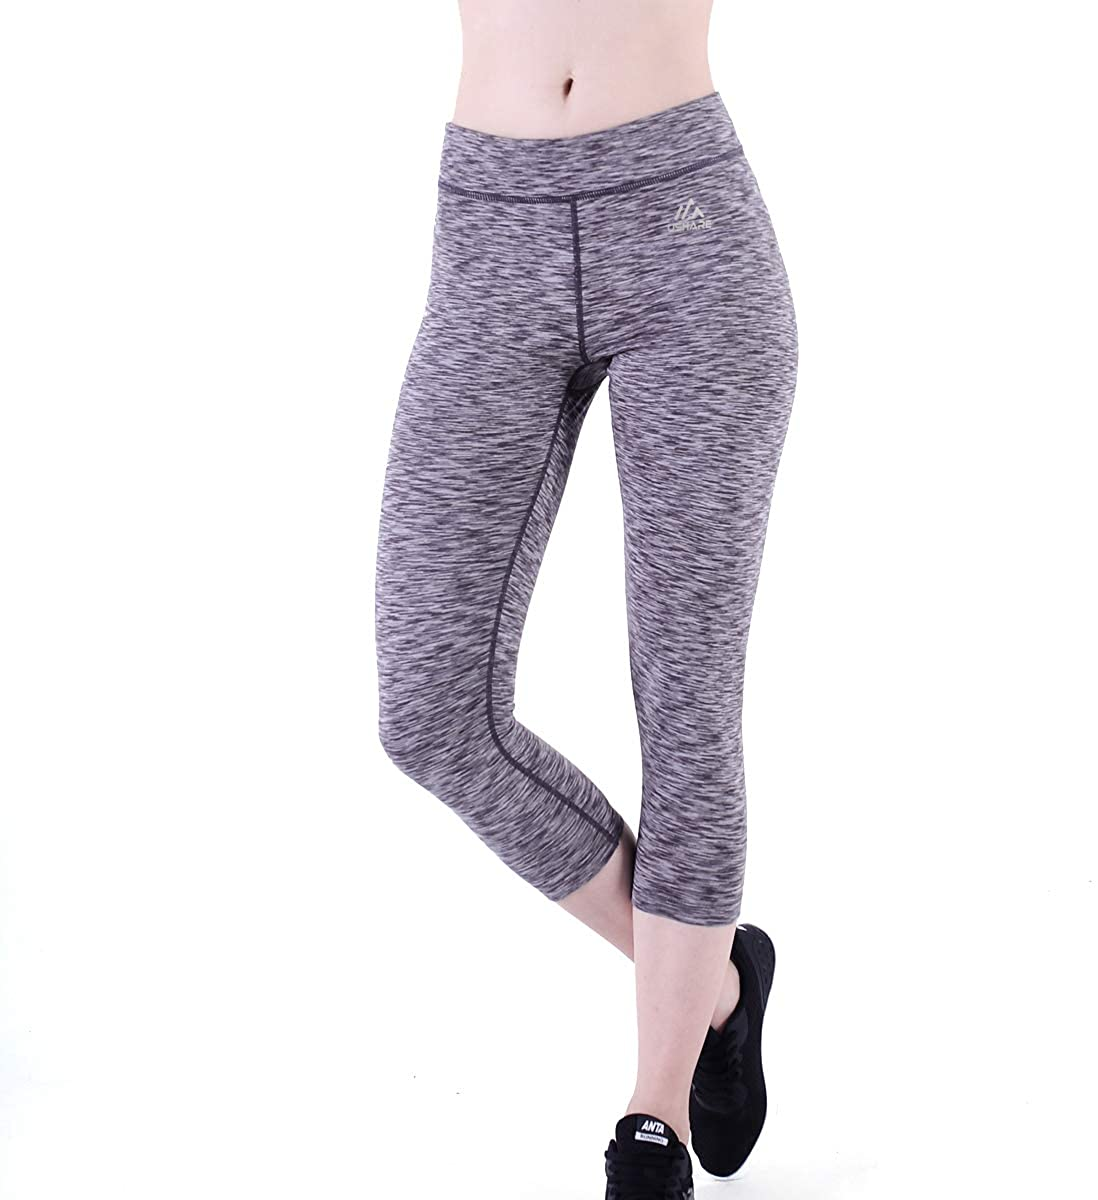 Nobranded USHARESPORTS Leggings for Womens High Waisted Workout Capri Yoga Pants Tummy Control Running Dacing Fitness